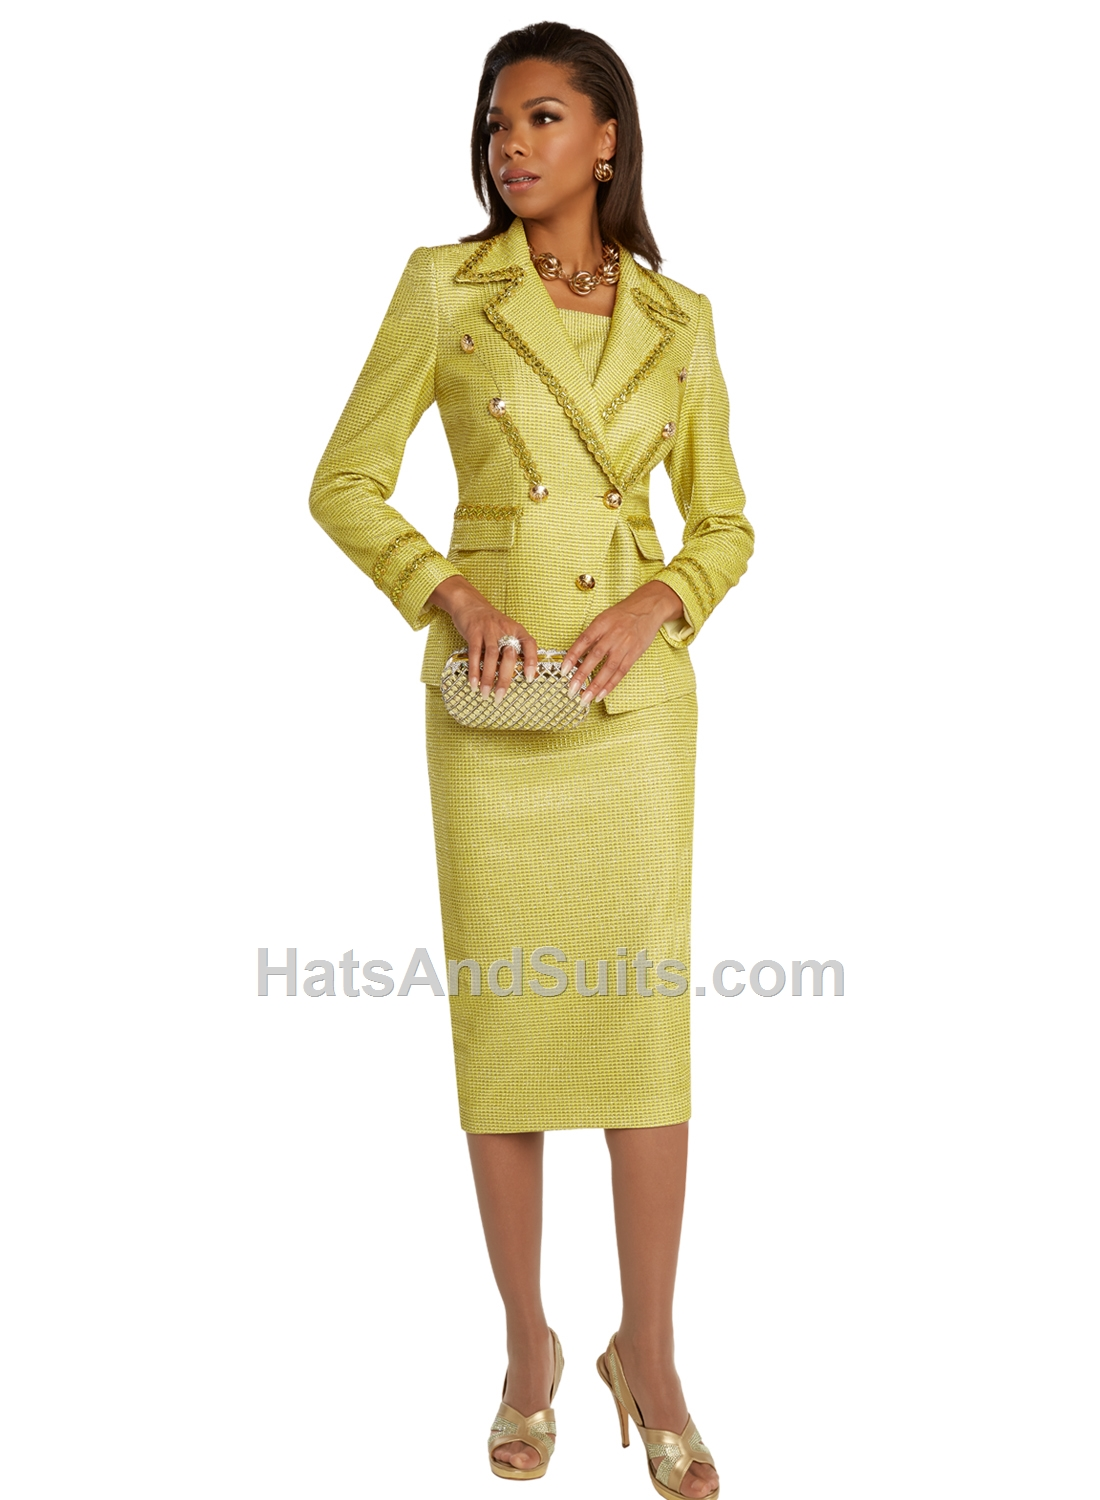 5683 Donna Vinci Couture 2 Pc. Jacket & Skirt Set. SP20